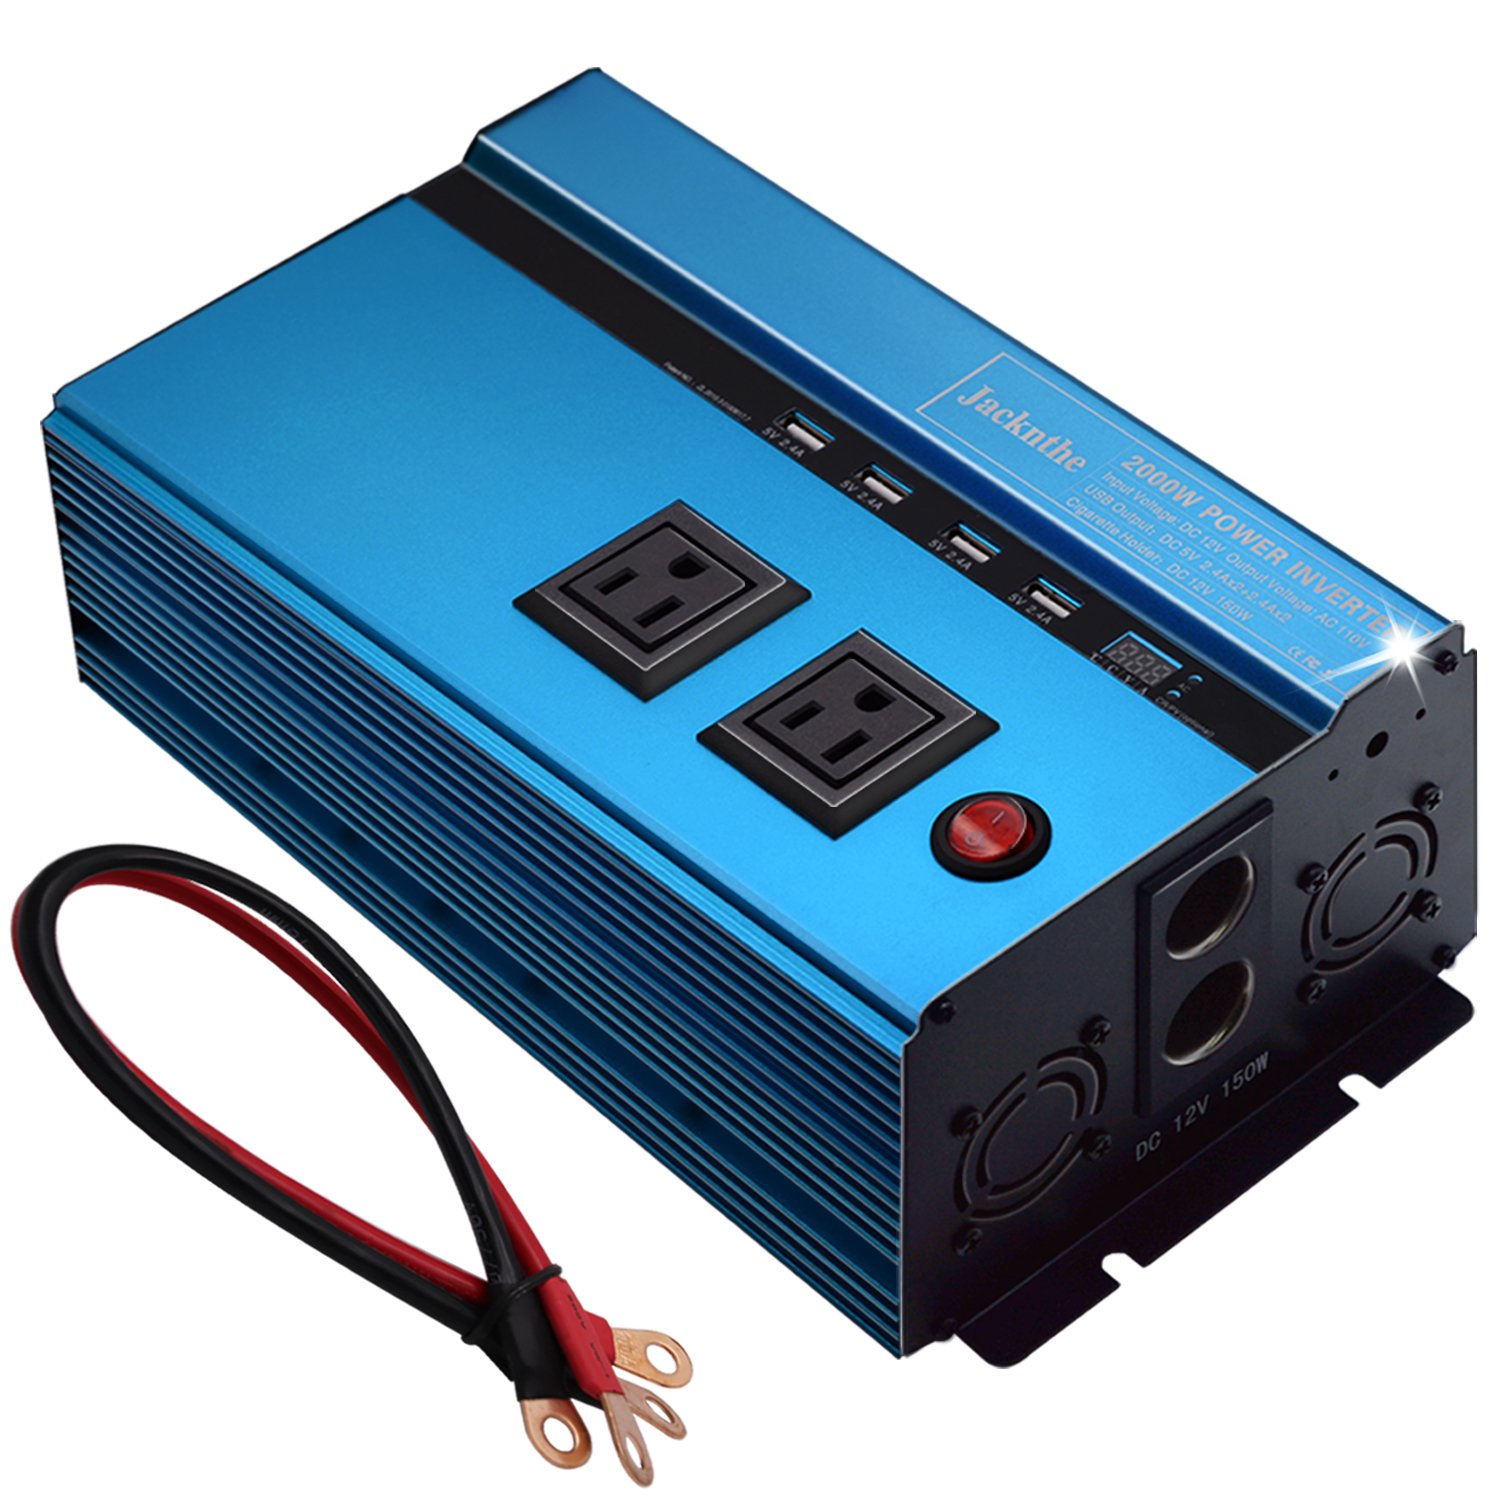 Jacknthe 2000w Power Inverter 12v To 110v Dc Ac Car Wiring Diagram In Addition Rv Electrical Converter For Battery Outlet Usb Ports Automotive